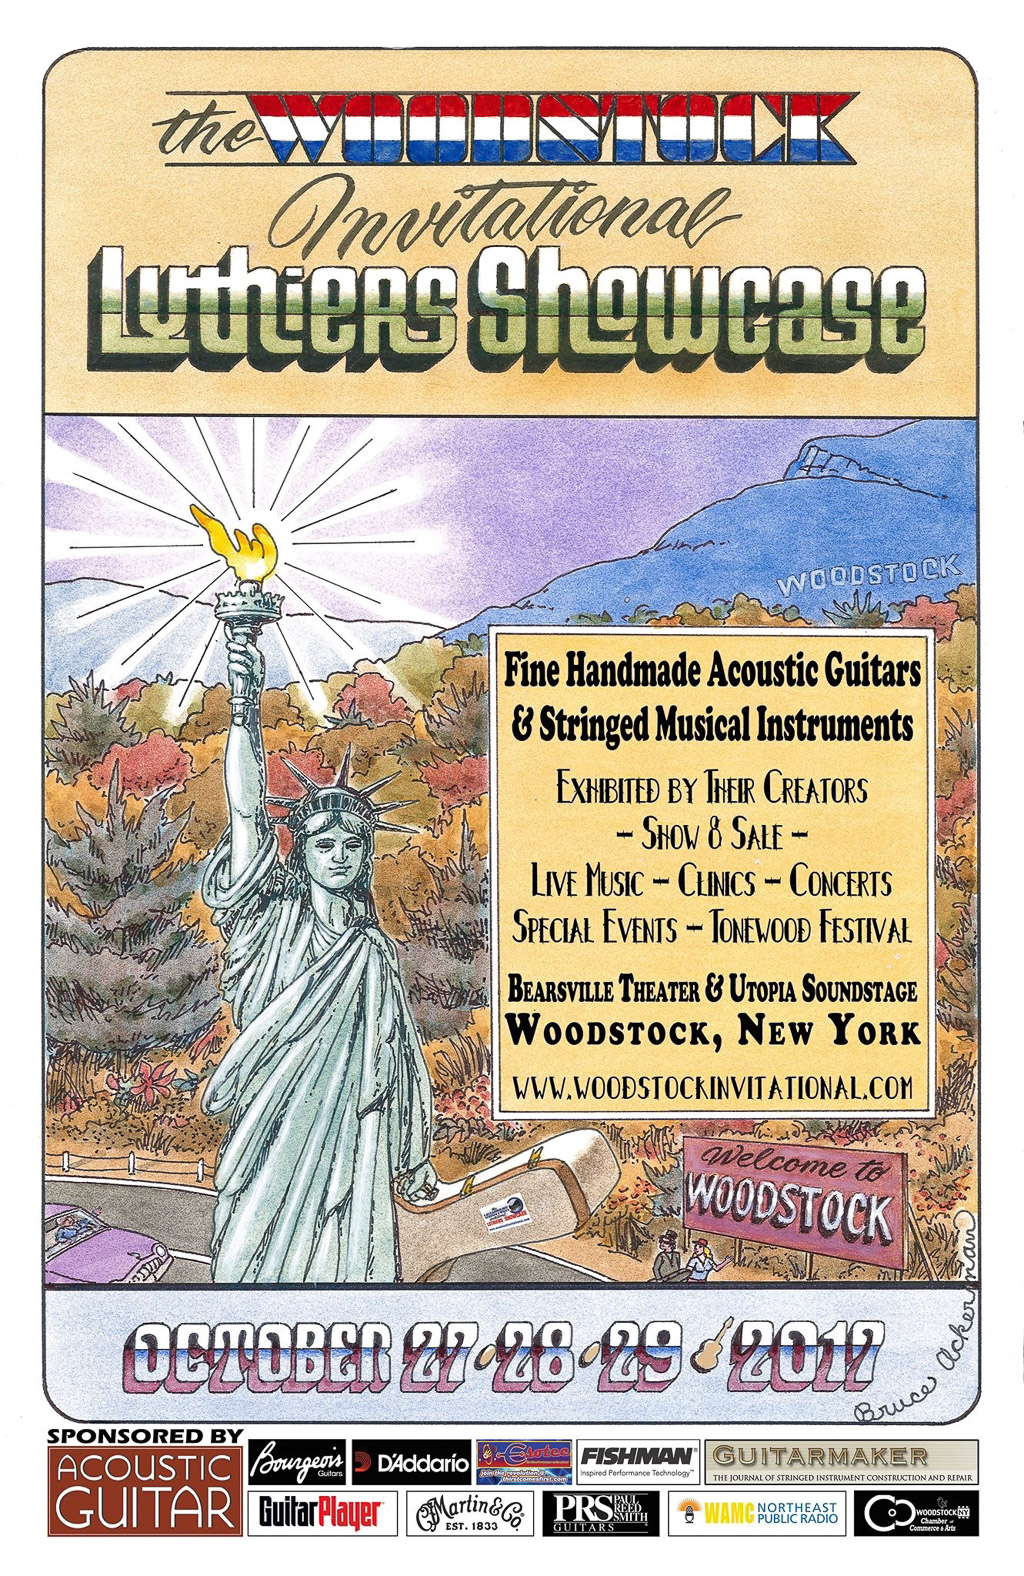 2017 Woodstock Invitational Luthiers Showcase Flyer